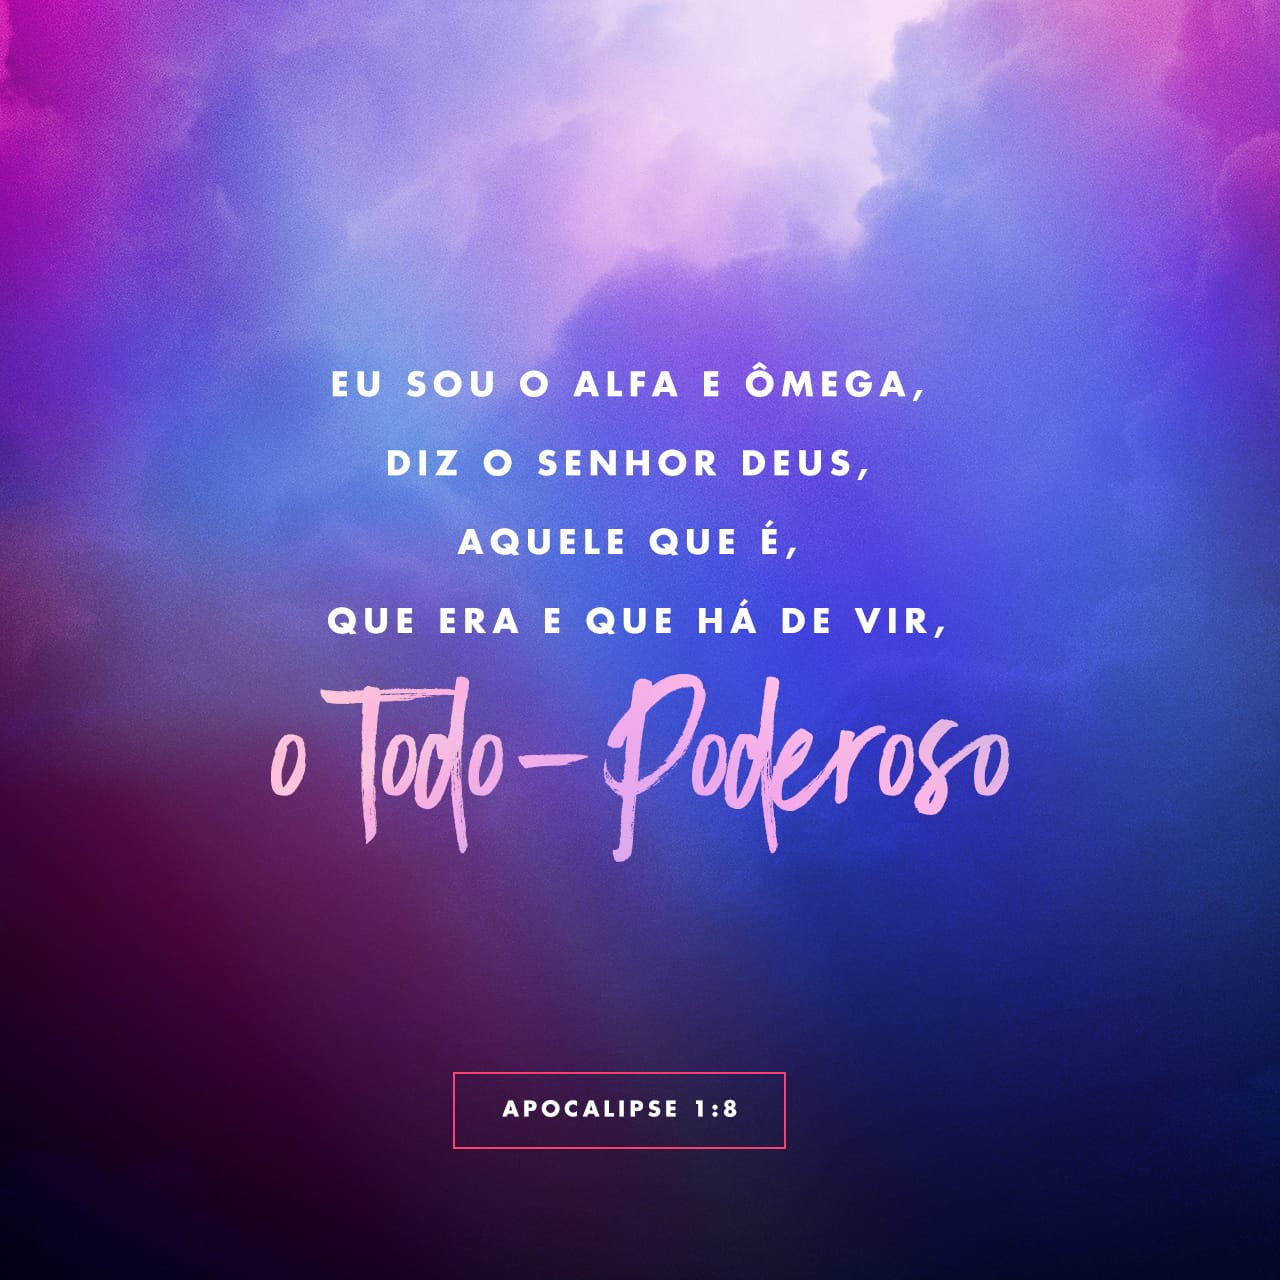 """Revelation 1:8 """"I am the Alpha and the Omega,"""" says the Lord God, """"who is, and who was, and who is to come, the Almighty.""""   New International Version (NIV)   Baixar o App da Bíblia agora"""